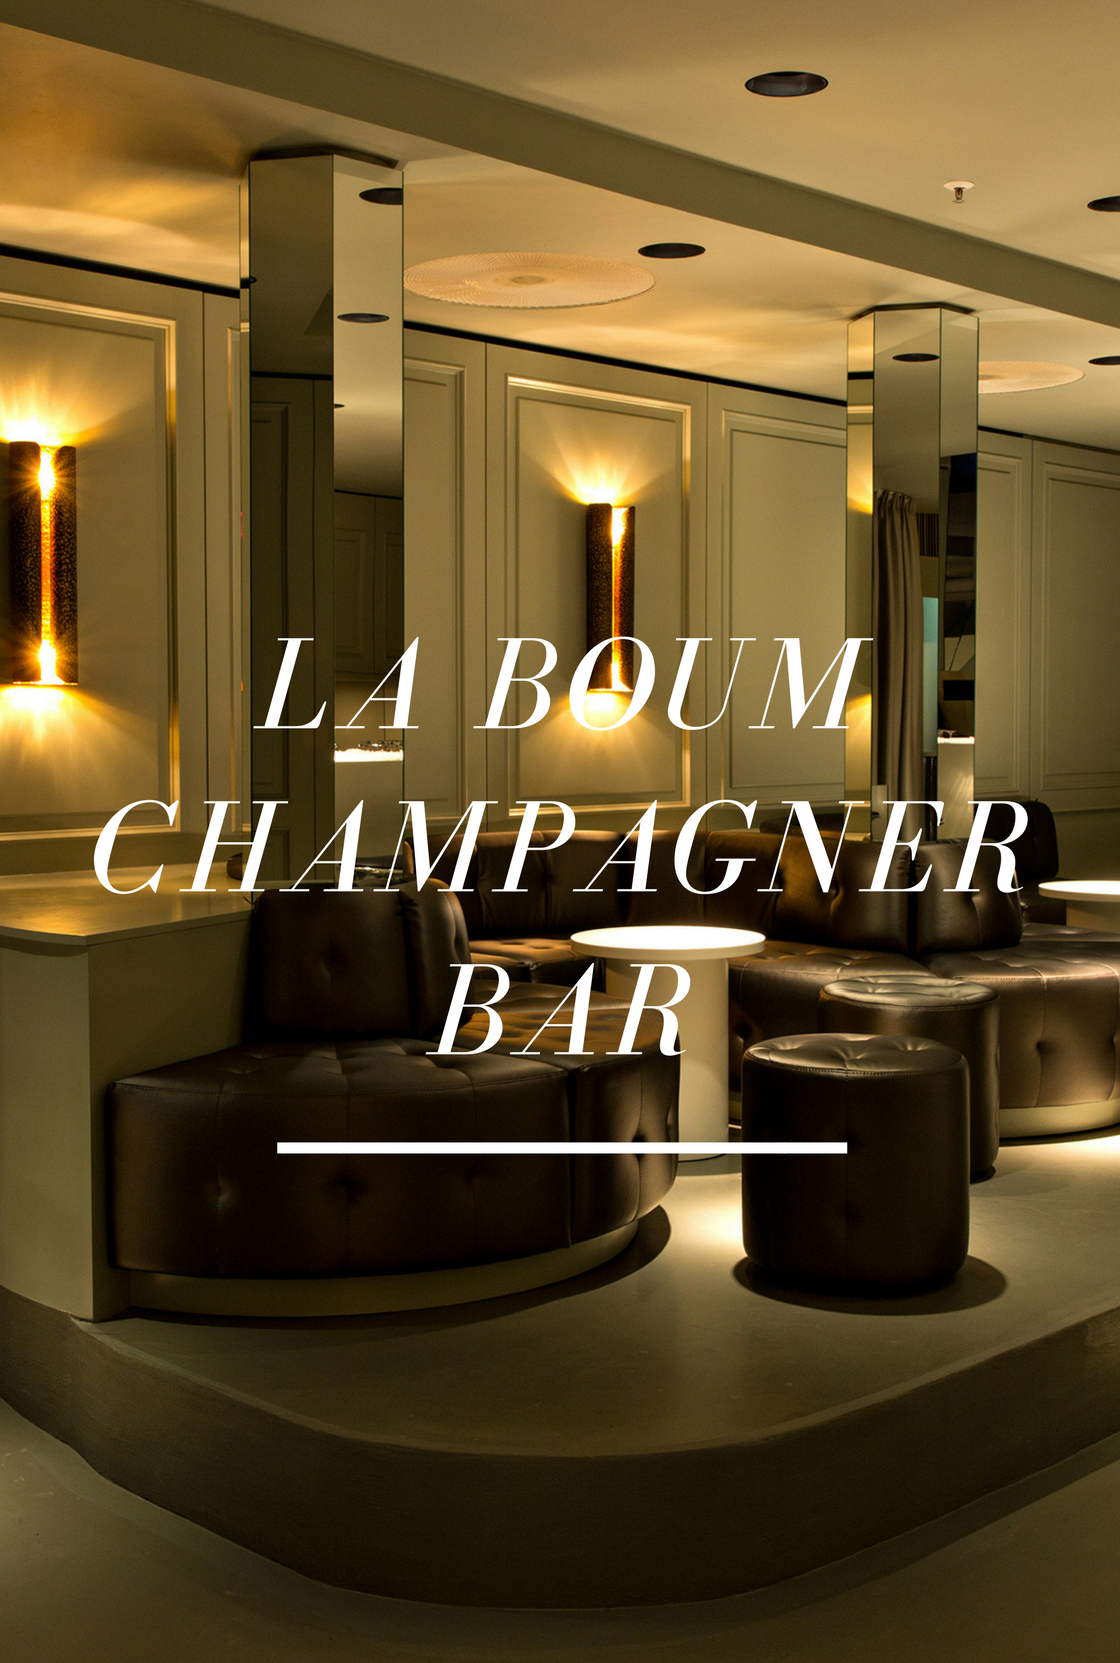 Find The La Boum Champagner Bar In Frankfurt